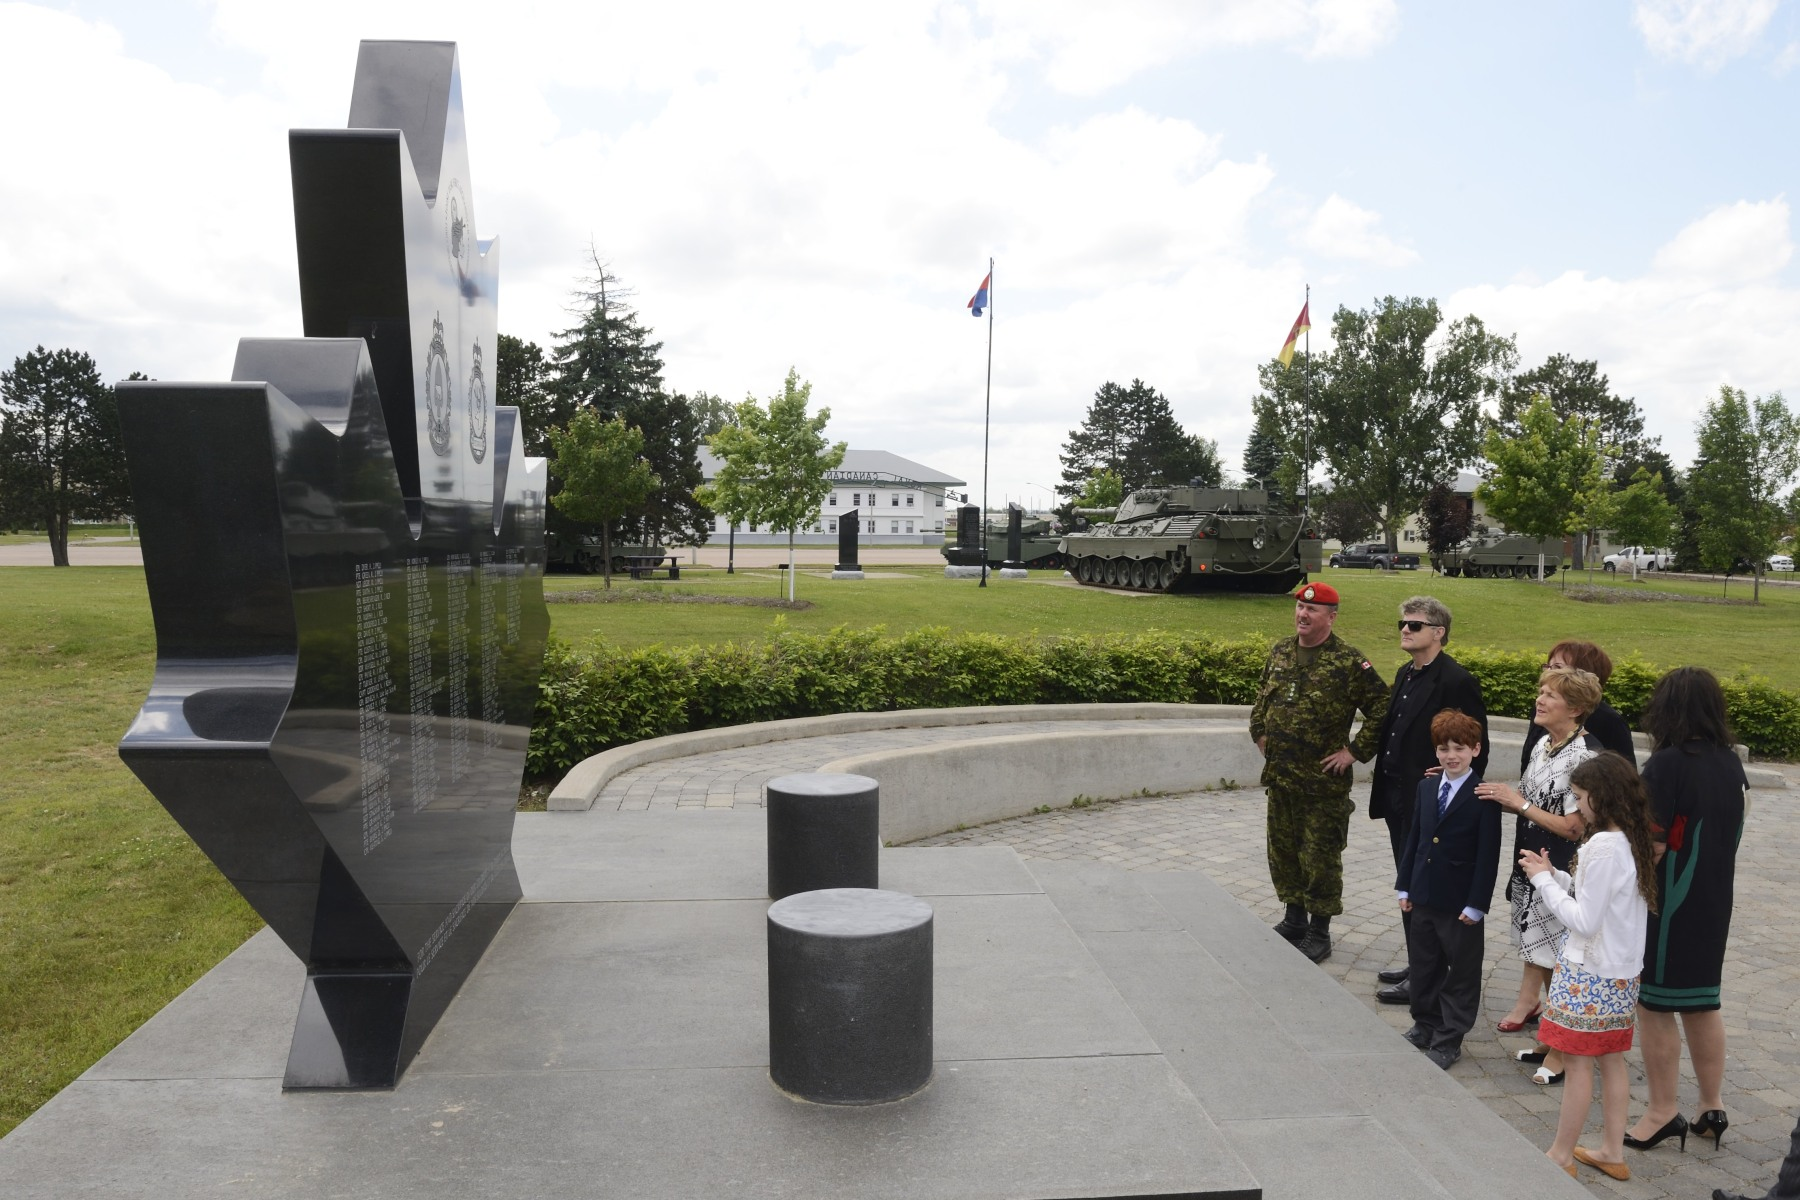 Before leaving, she visited the monument erected in memory of the Canadian soldiers who died in combat in Afghanistan.